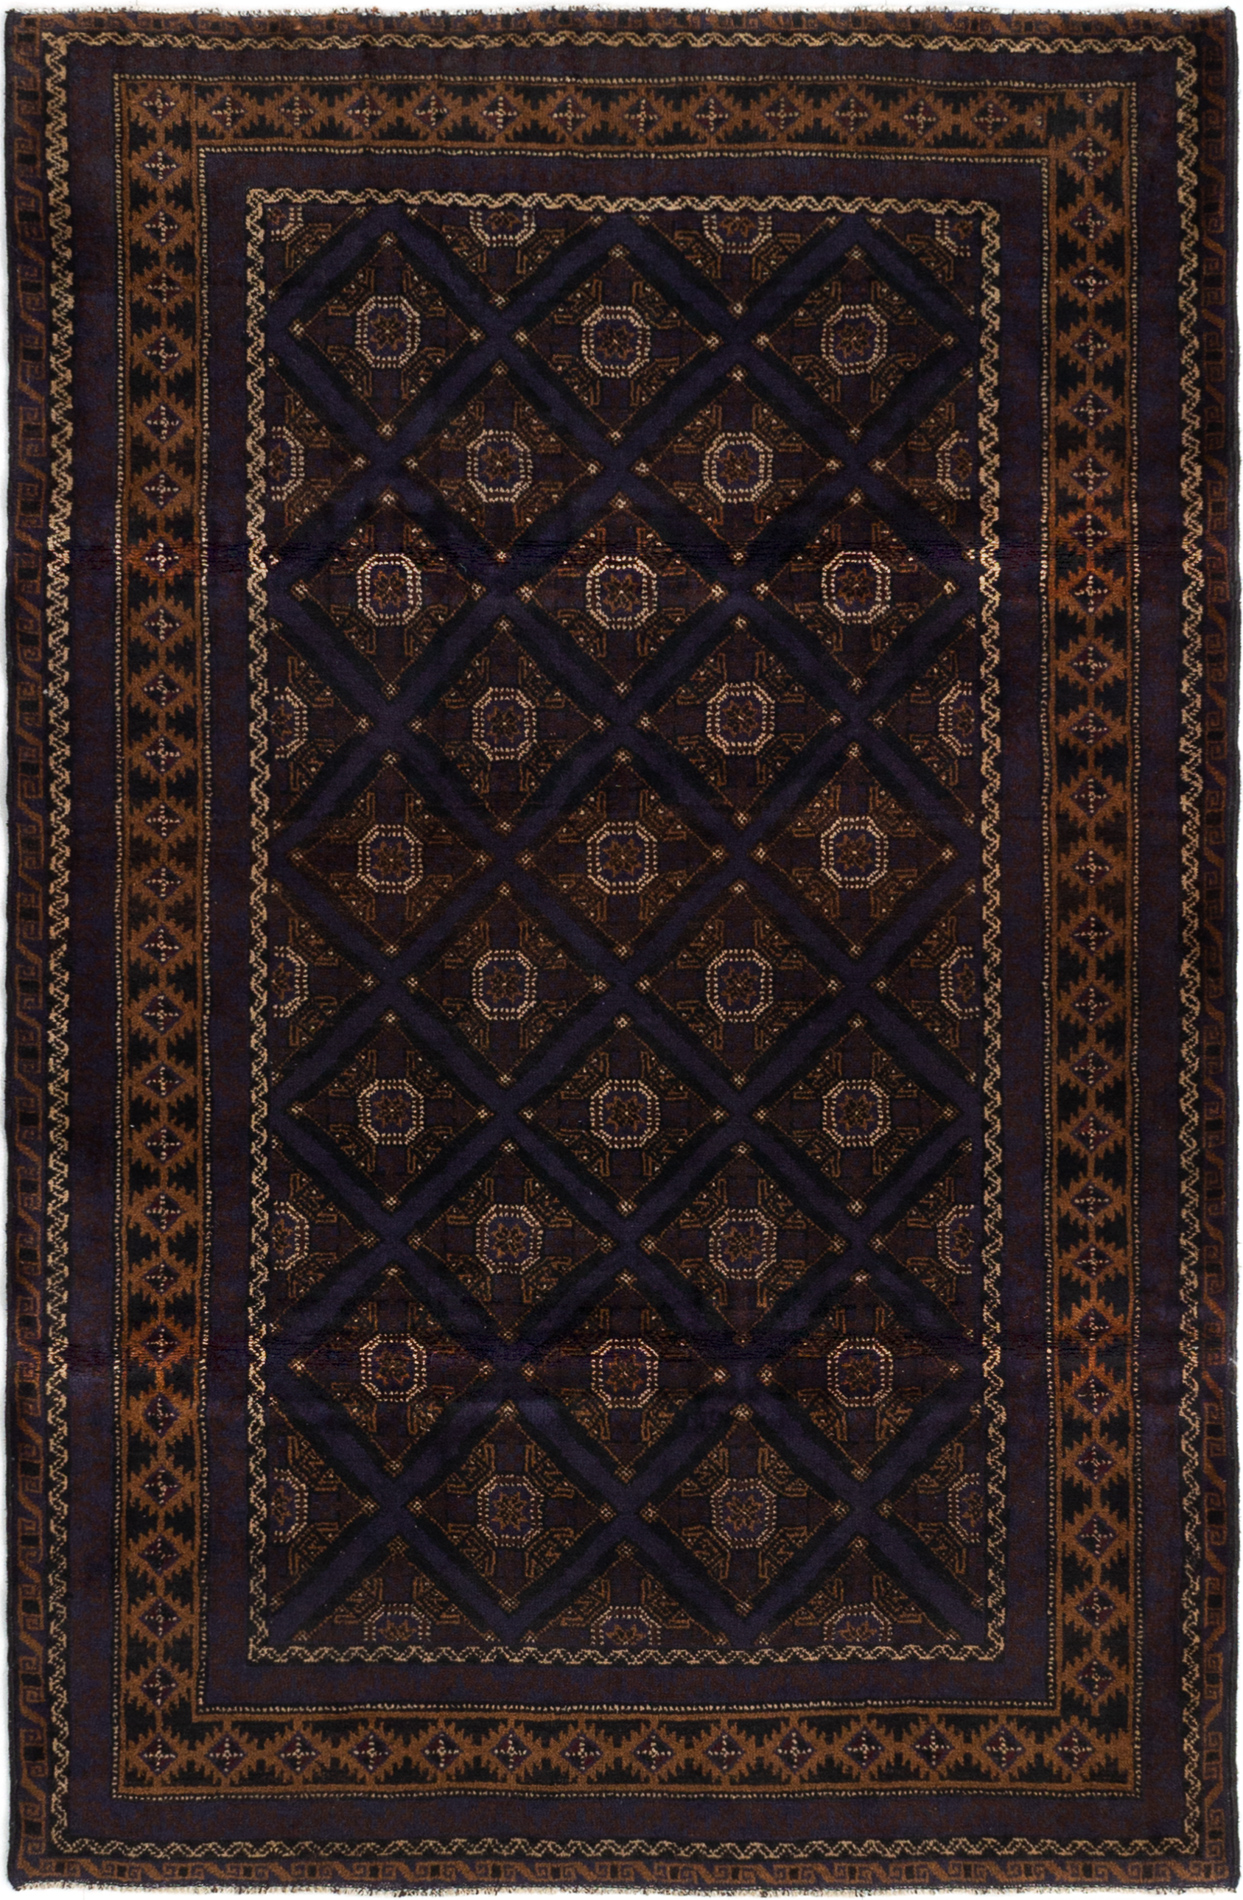 """Hand-knotted Royal Baluch Dark Brown, Slate Blue Wool Rug 4'0"""" x 6'4"""" Size: 4'0"""" x 6'4"""""""